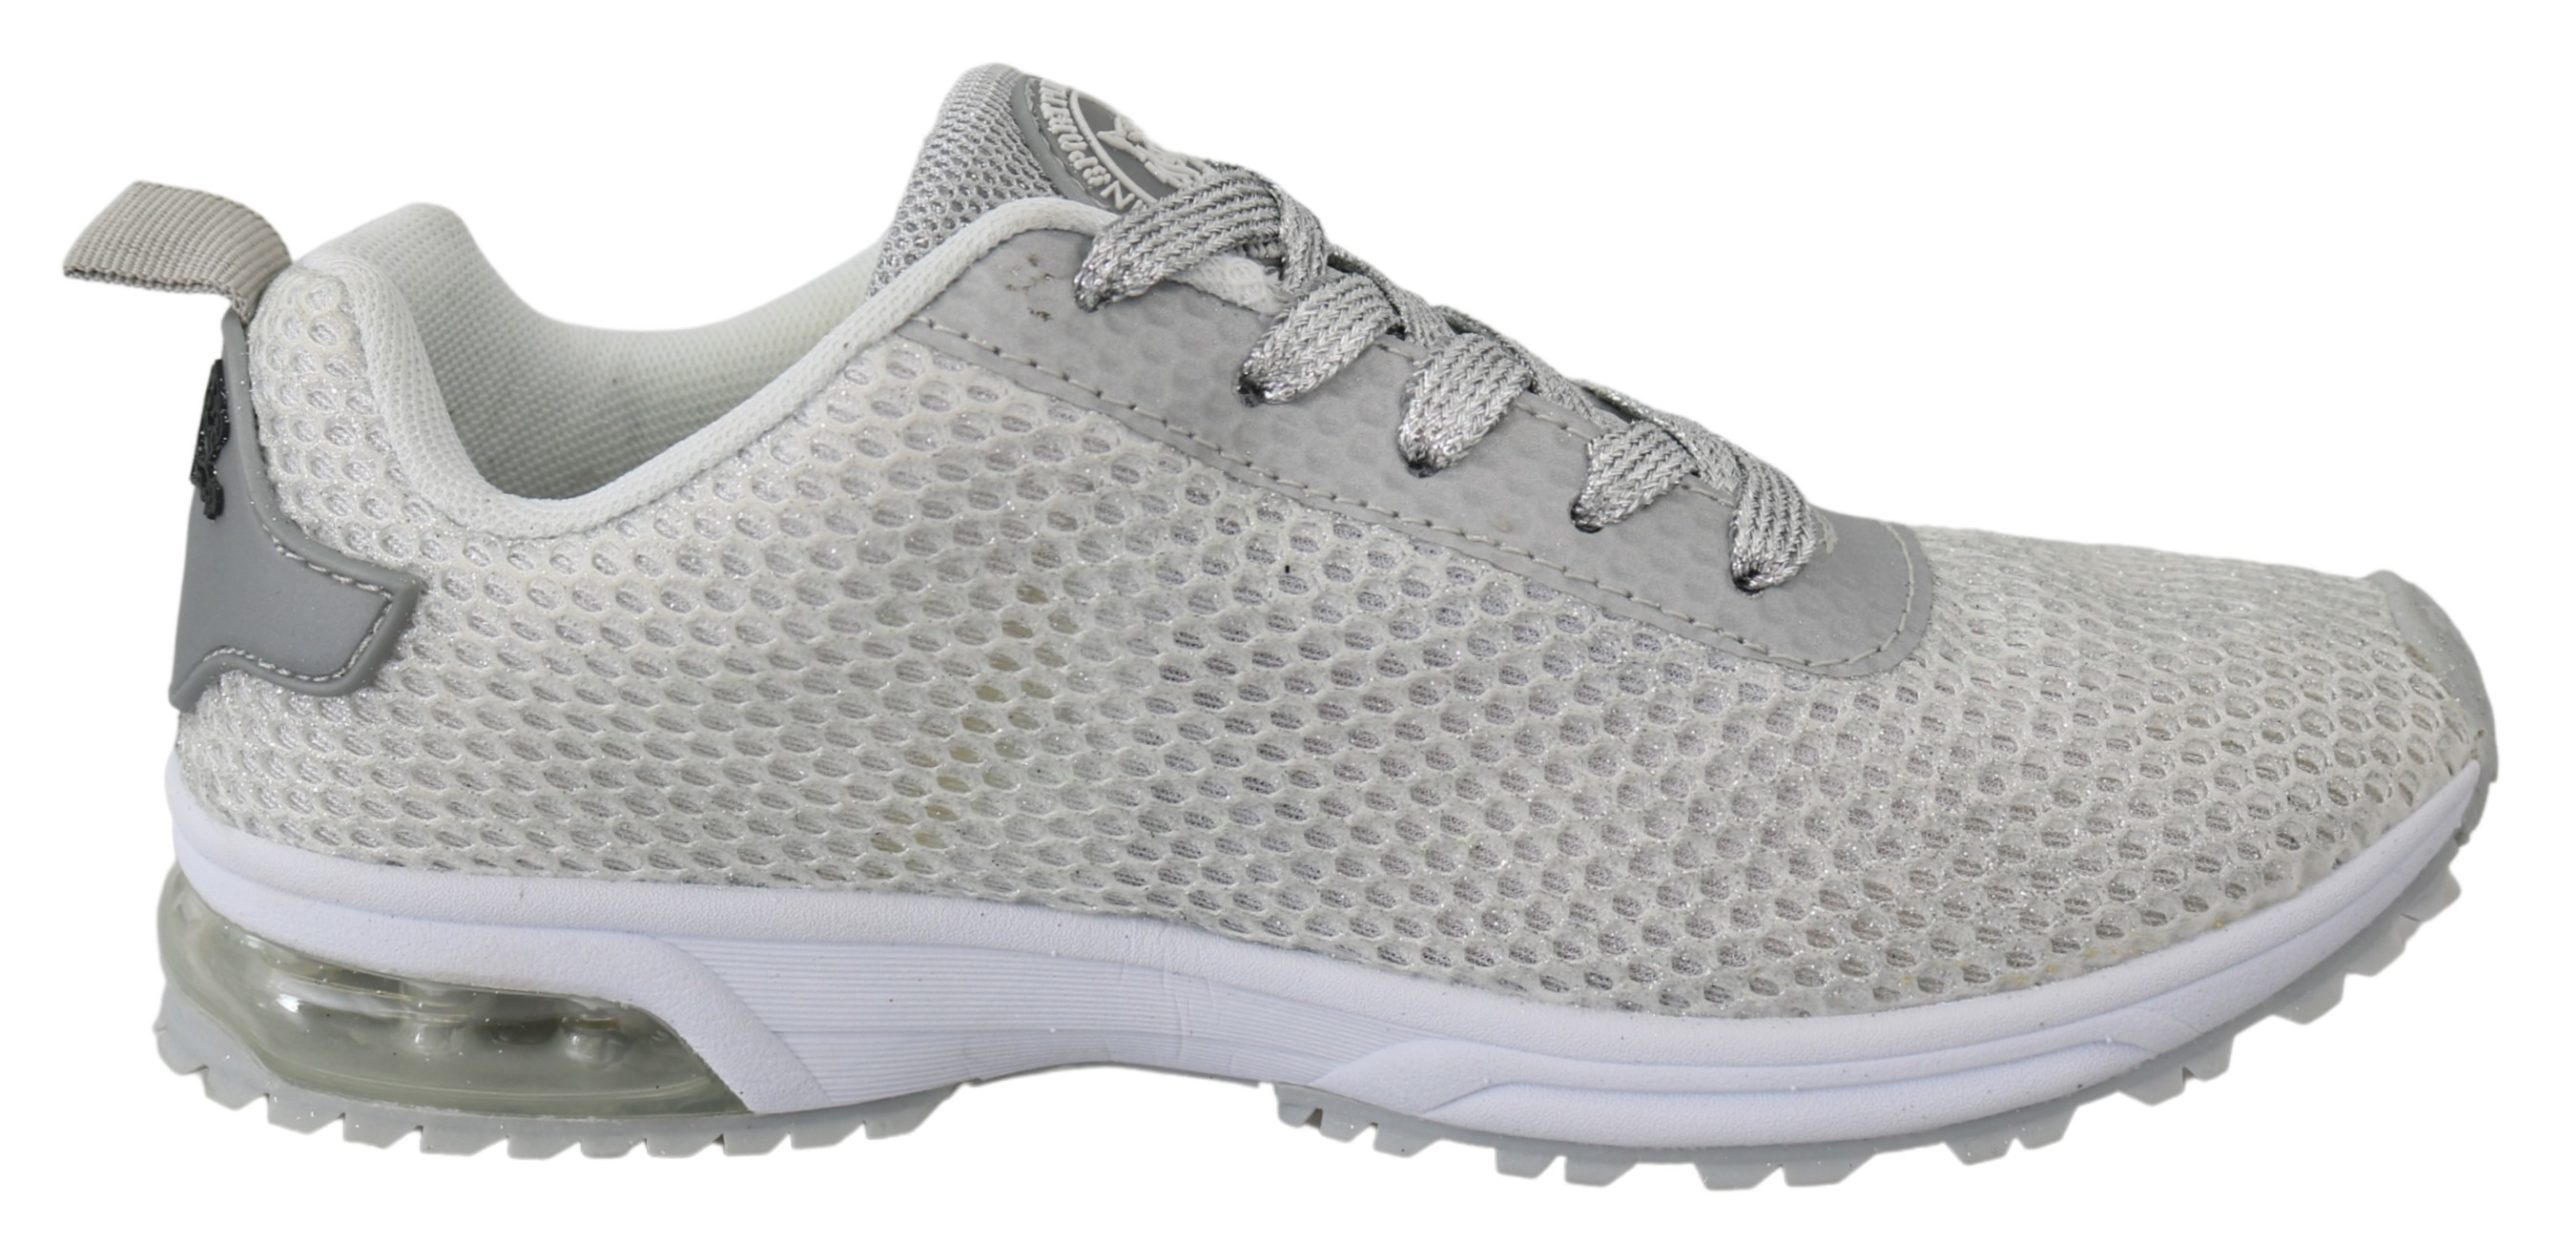 Silver Polyester Gretel Sneakers Shoes - EU36/US6